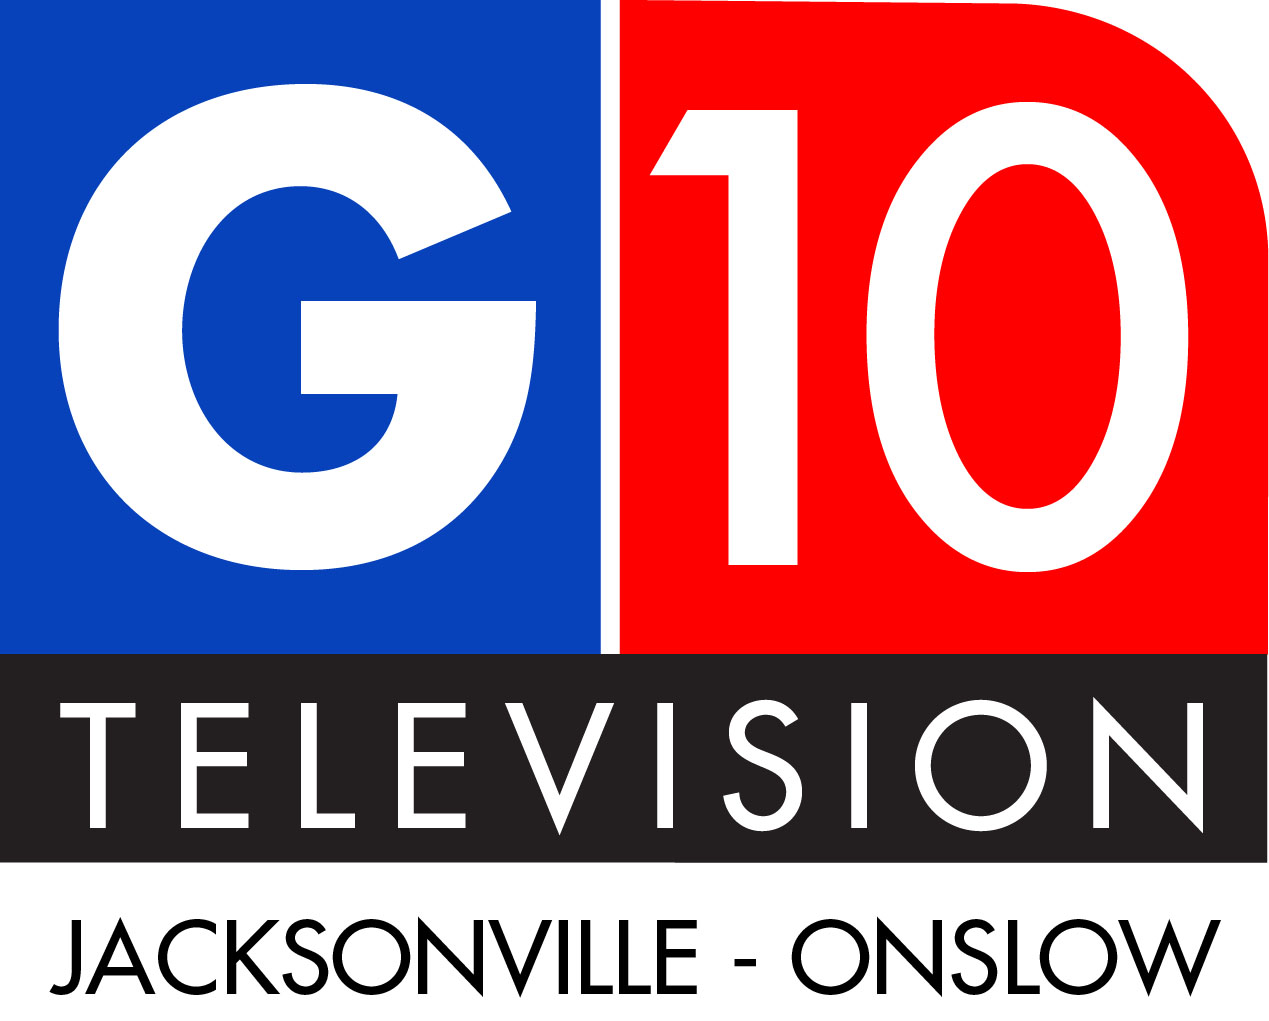 G10 Television Jacksonville-Onslow